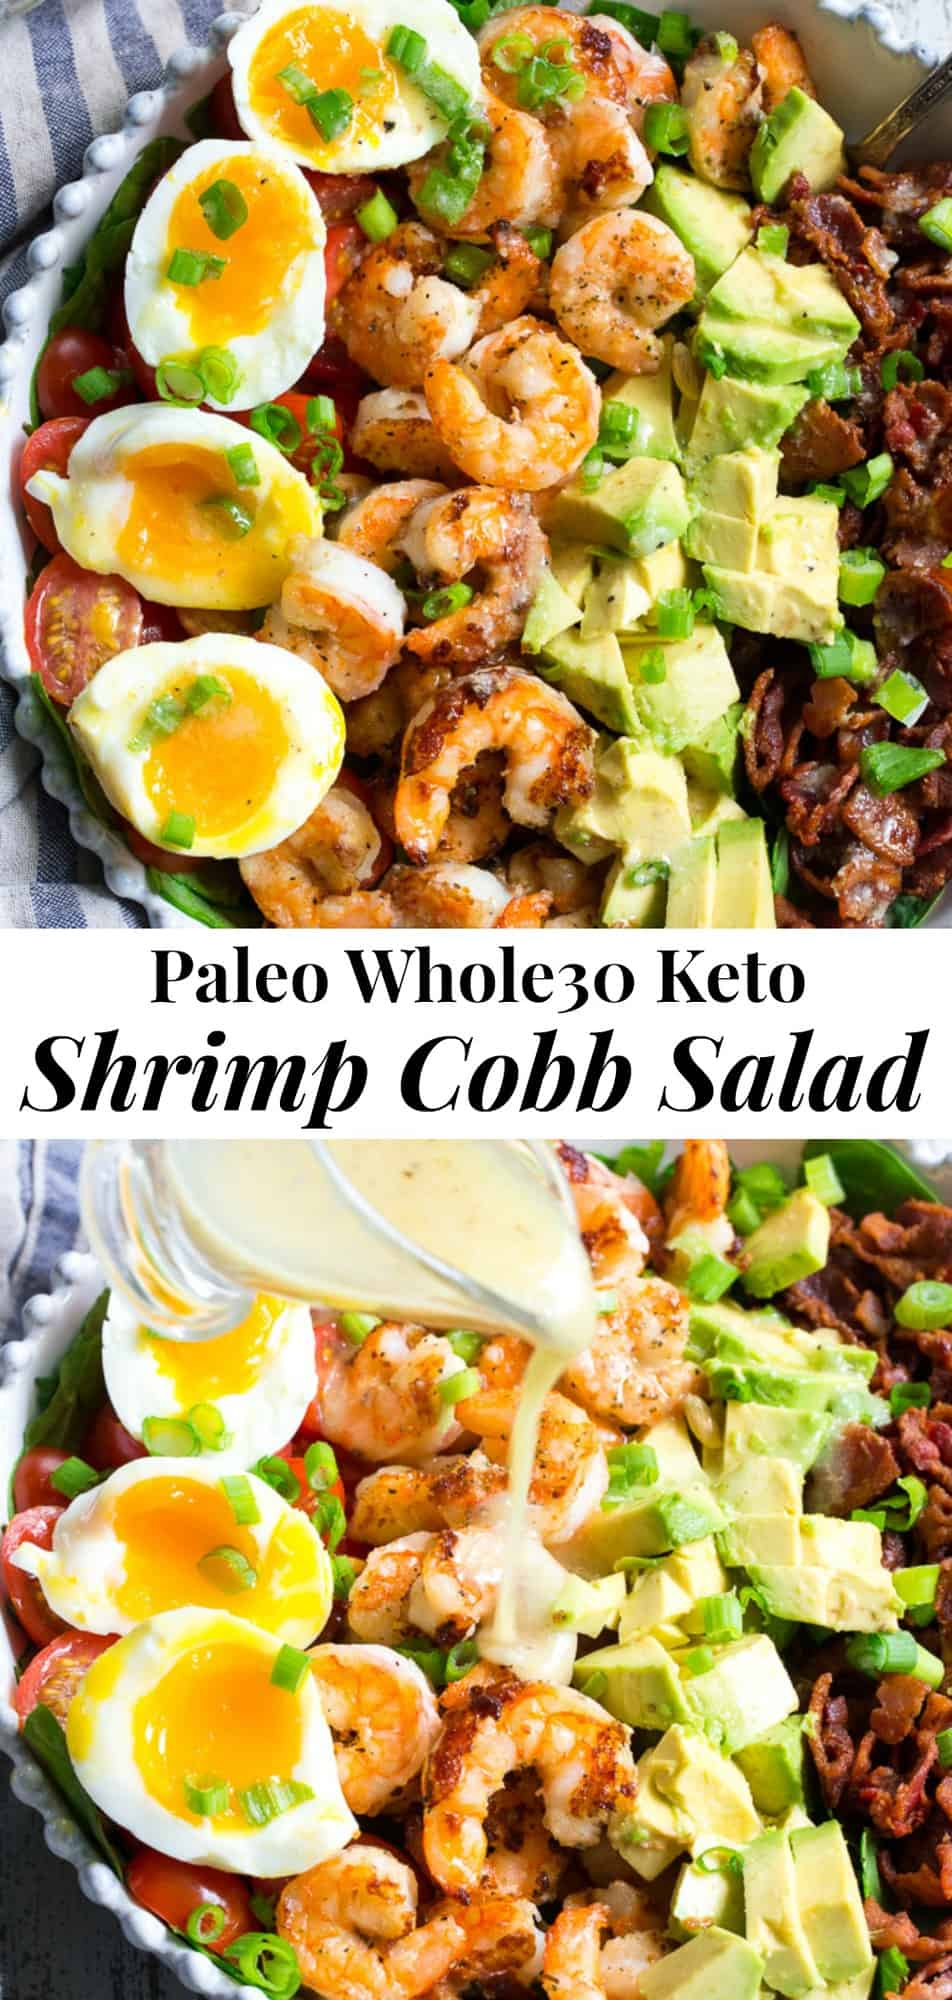 Perfectly seasoned grilled shrimp with crispy bacon, tomatoes, avocado and soft boiled eggs makes the best healthy, BBQ ready Cobb salad for summer!  It's tossed in an easy lemon garlic vinaigrette with your favorite salad greens for a flavor-packed low carb, Paleo, and Whole30 compliant meal.  #paleo #Whole30 #keto